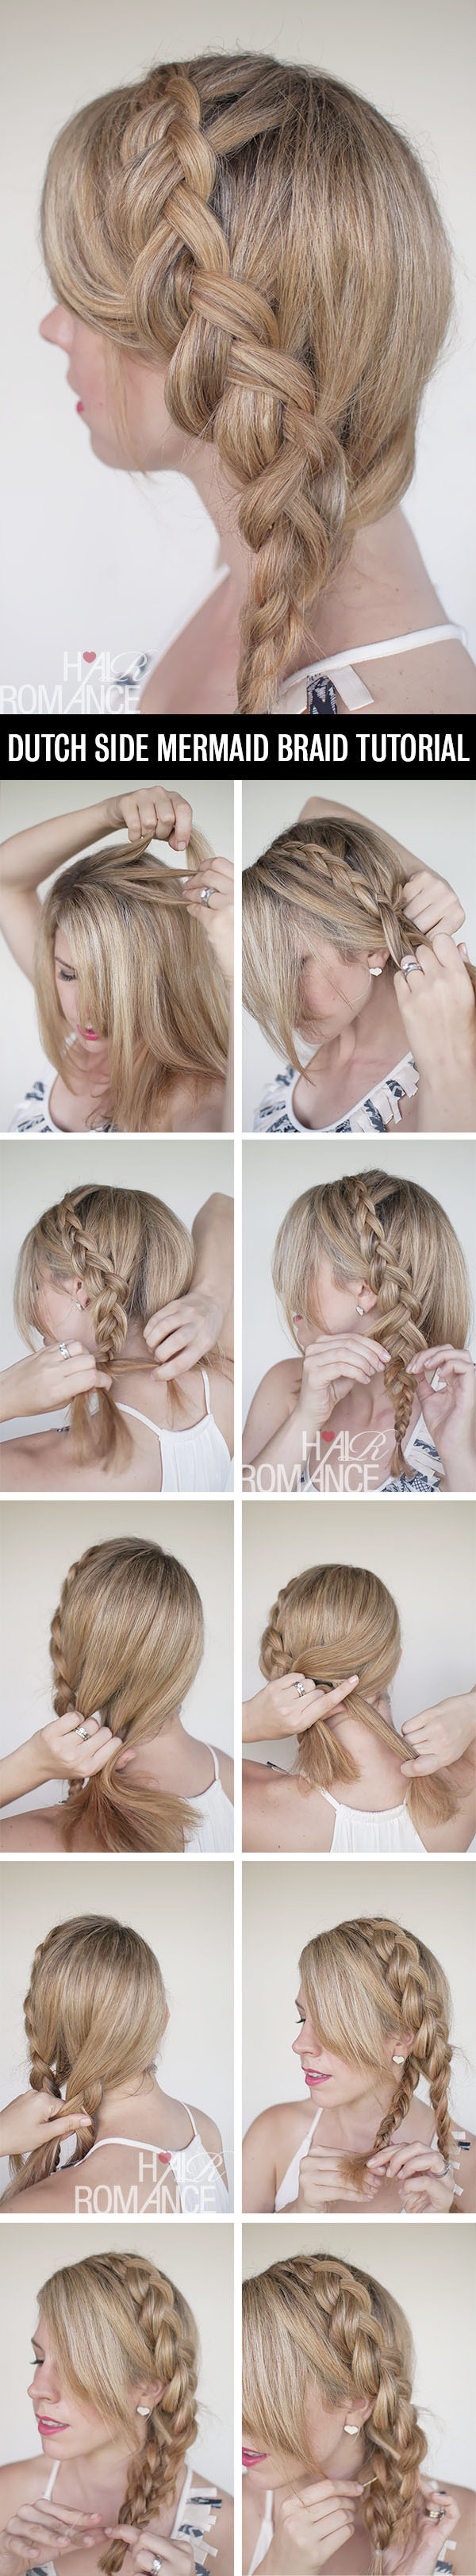 Superb 12 Romantic Braided Hairstyles With Useful Tutorials Pretty Designs Short Hairstyles For Black Women Fulllsitofus